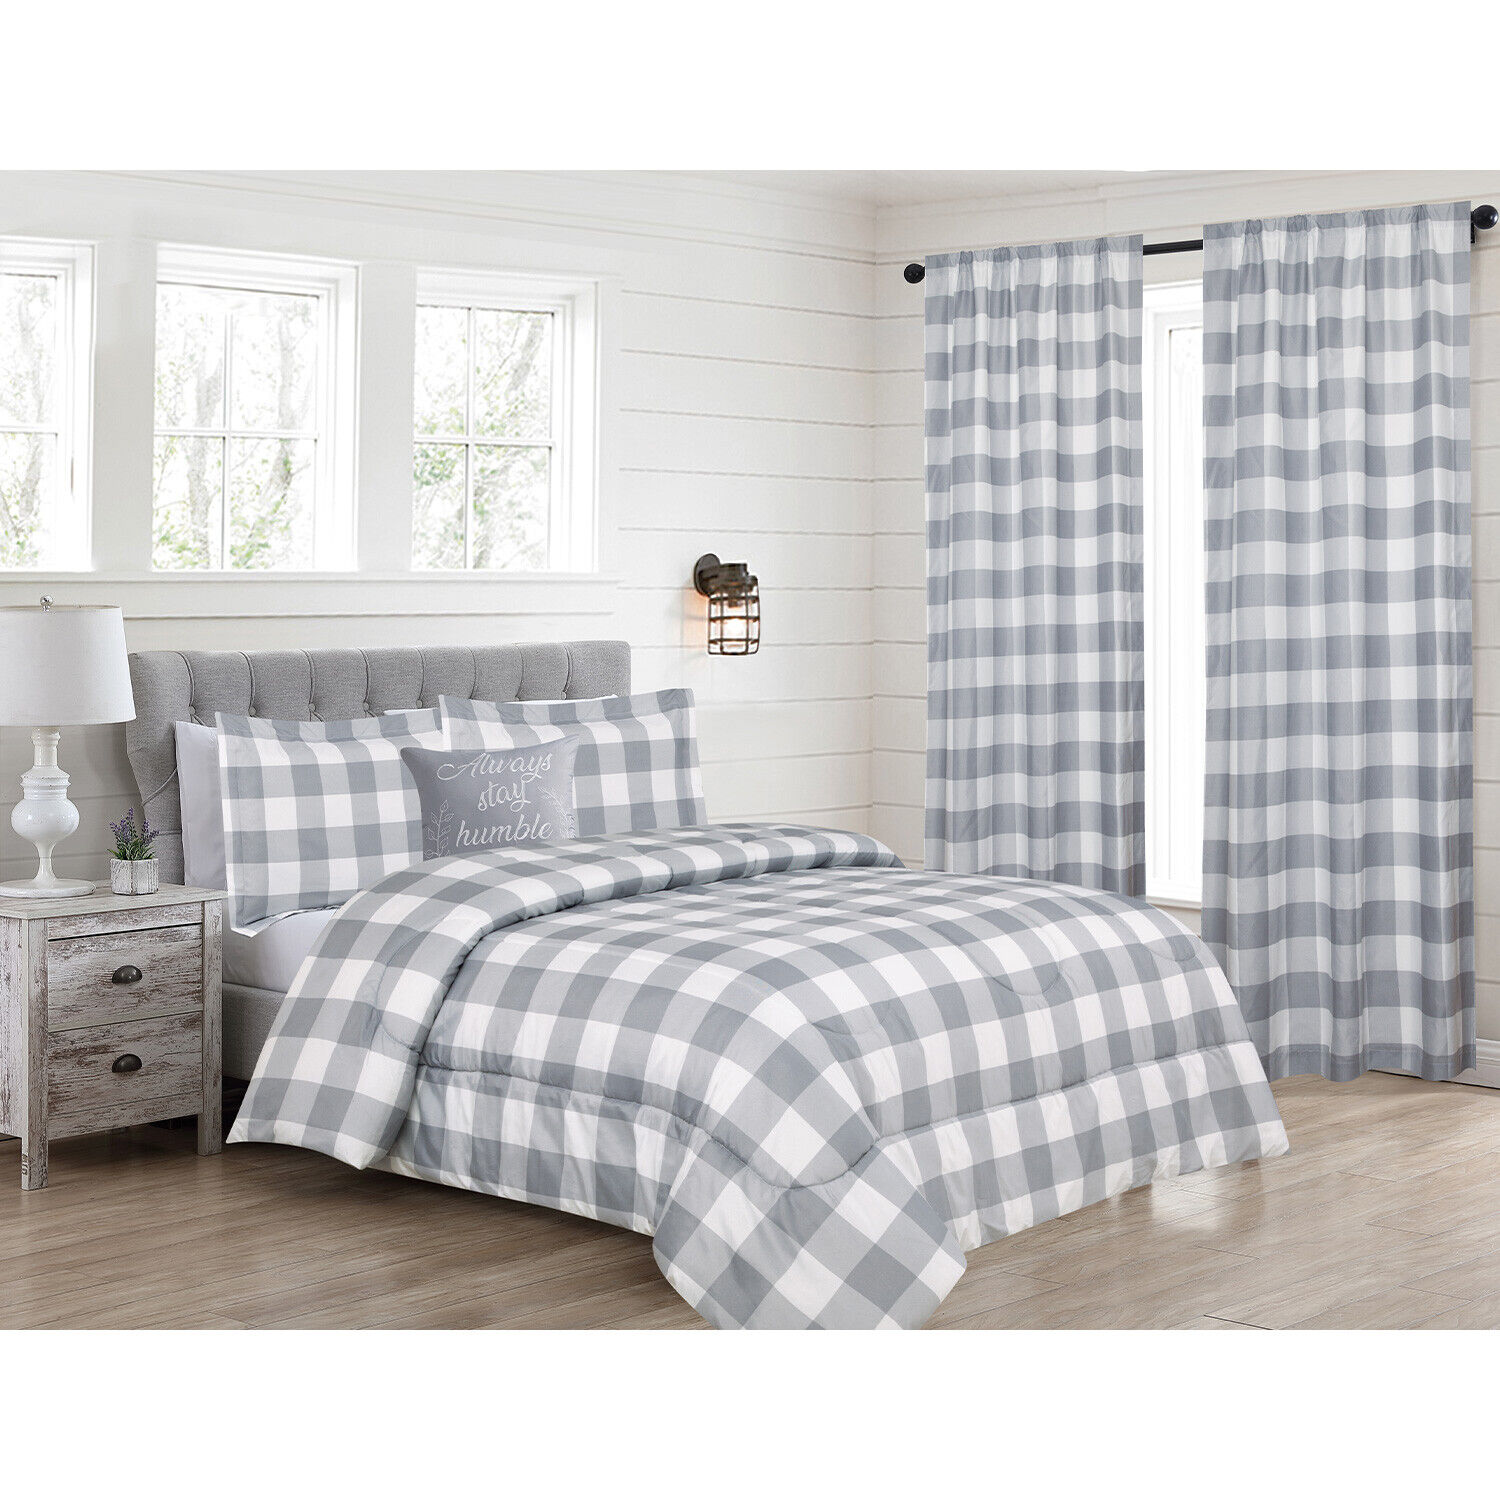 Twin, Queen or King Buffalo Plaid Comforter Bedding Set or Window Curtains, Grey Bedding